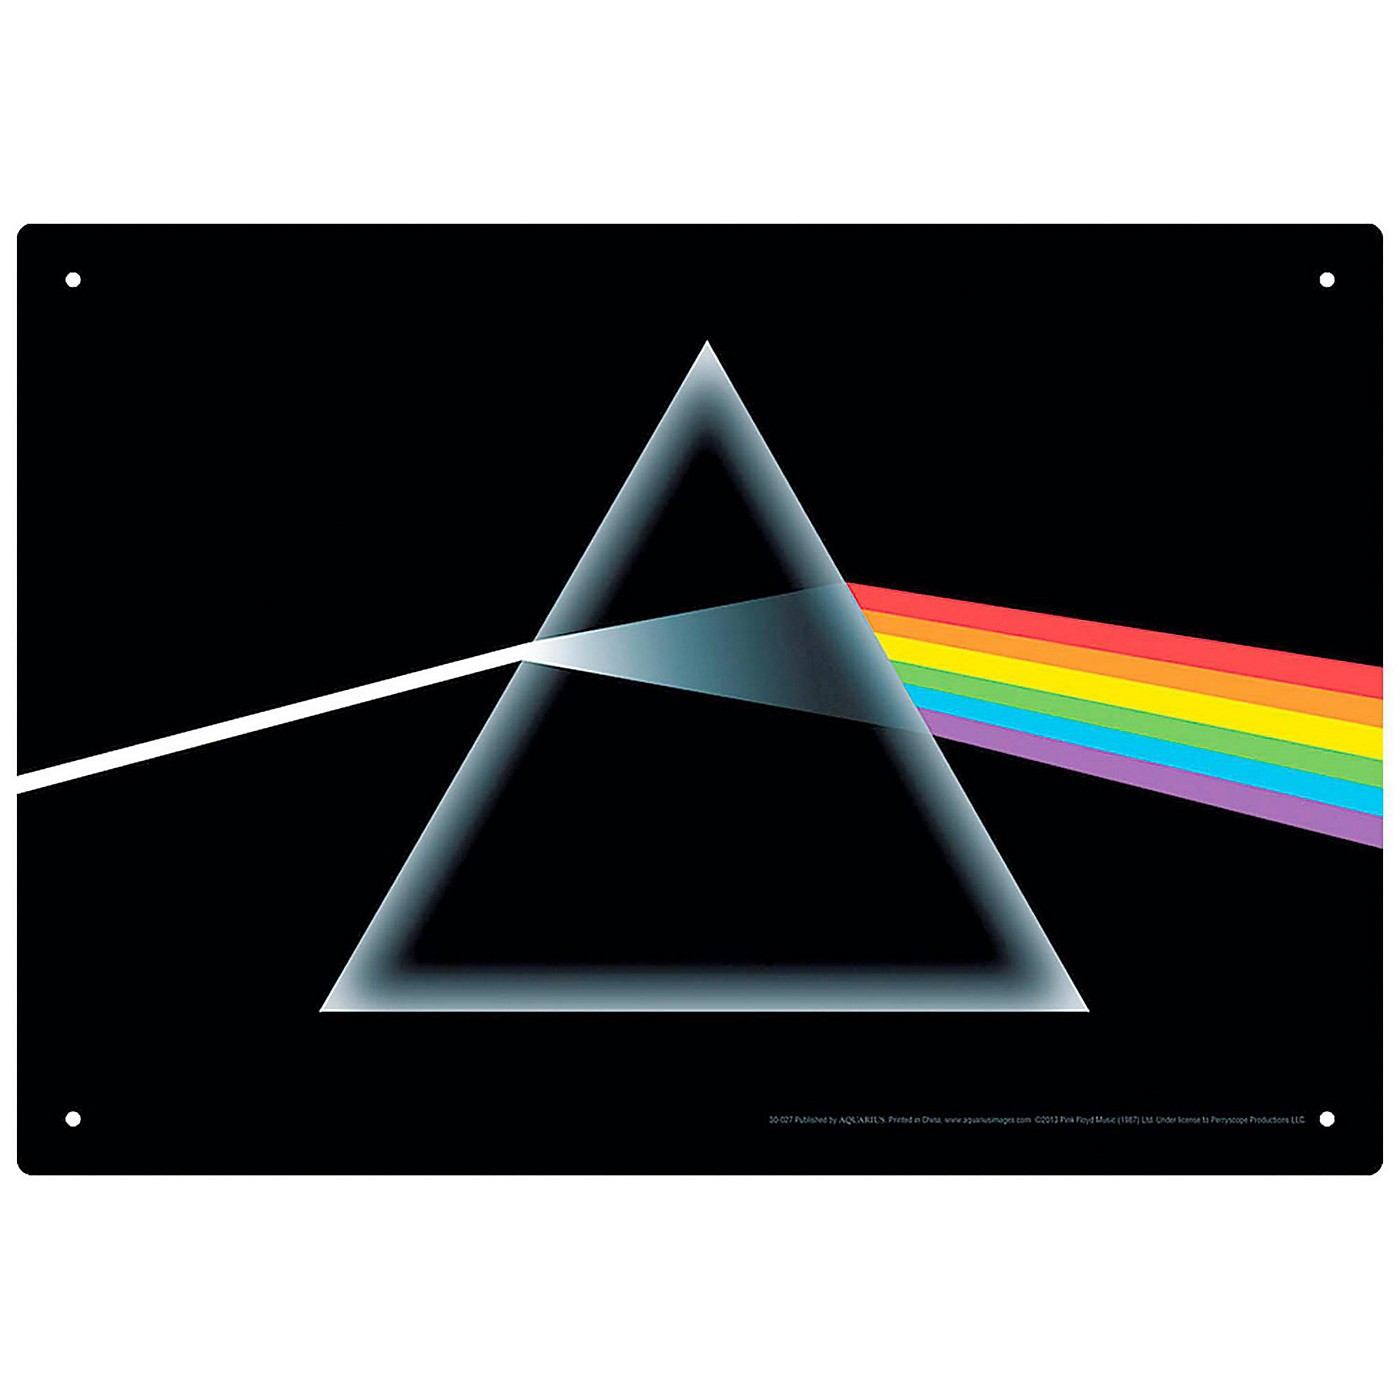 Hal Leonard Pink Floyd Dark Side of the Moon Tin Sign thumbnail